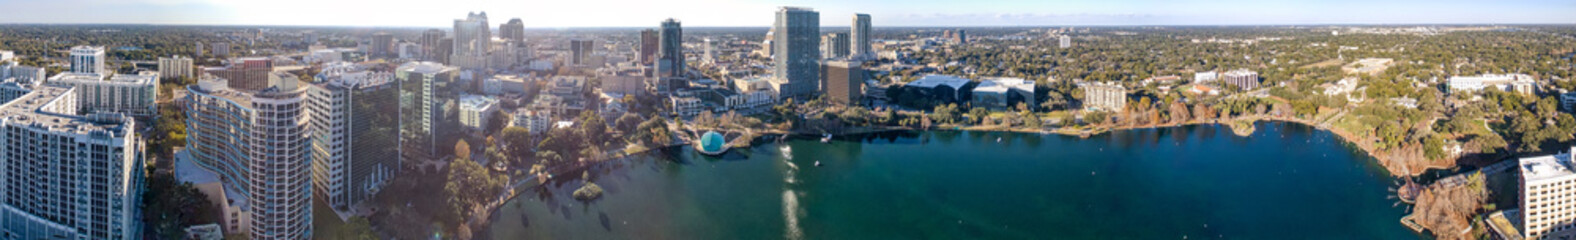 Fototapete - ORLANDO, FL - FEBRUARY 2016: Panoramic aerial view of city skyline at sunset. Orlando is a famous destination in Florida